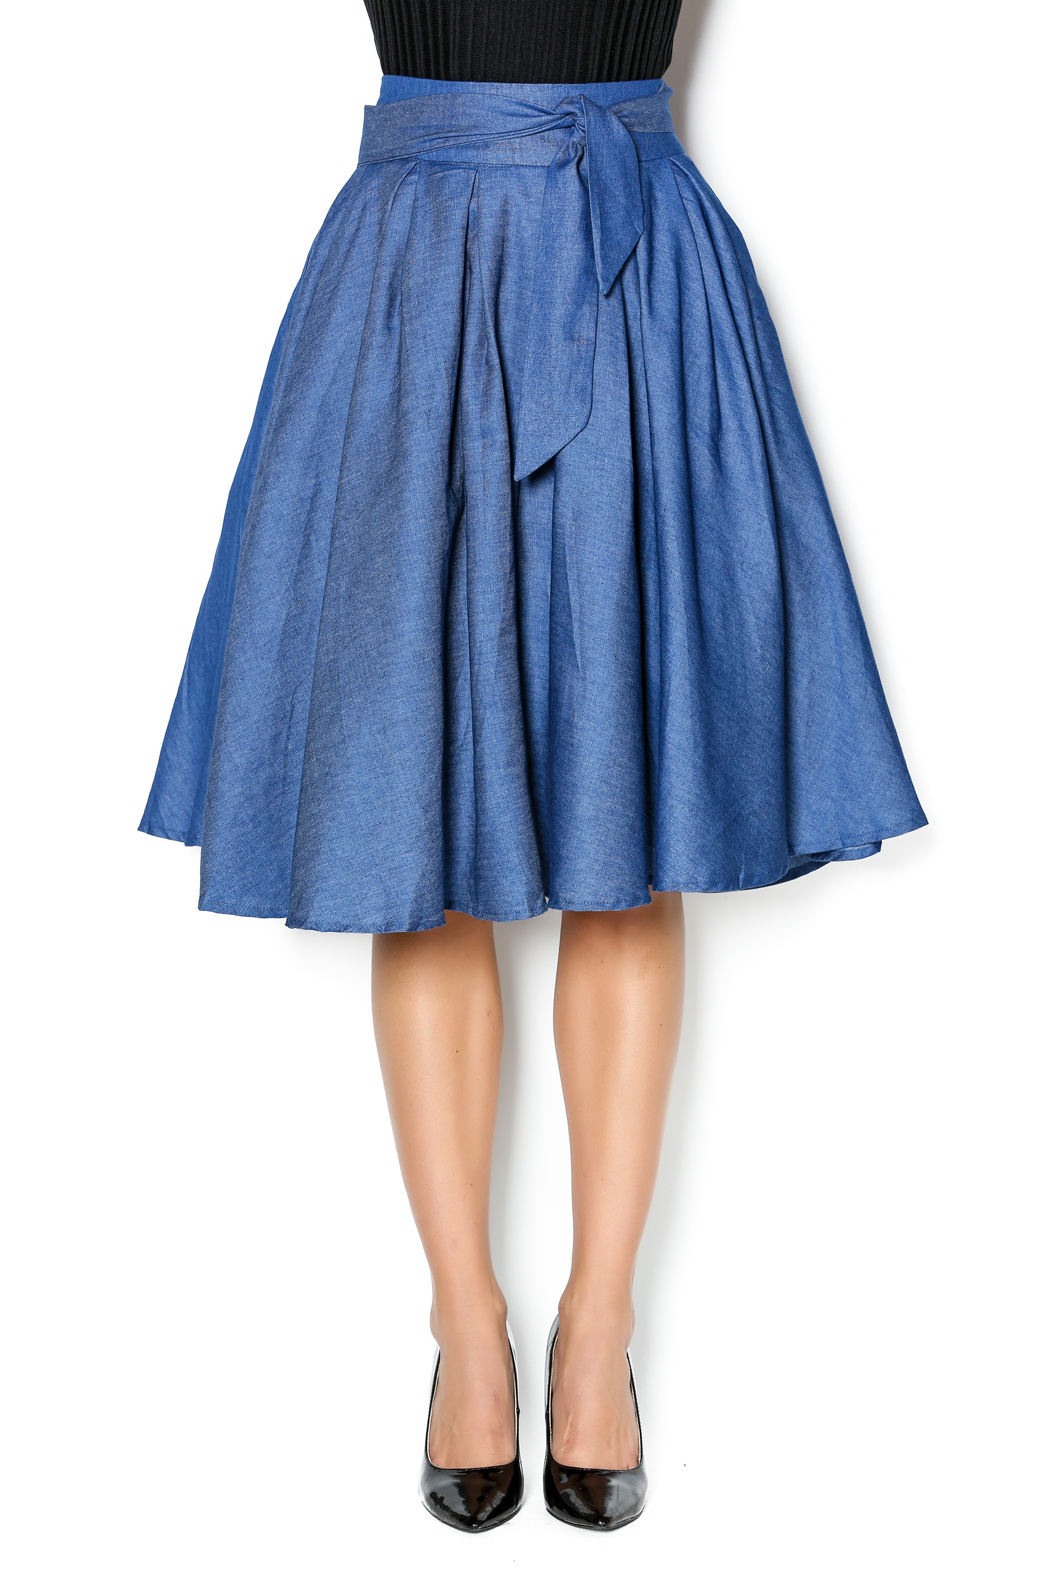 Flowy Denim Skirt — Shoptiques